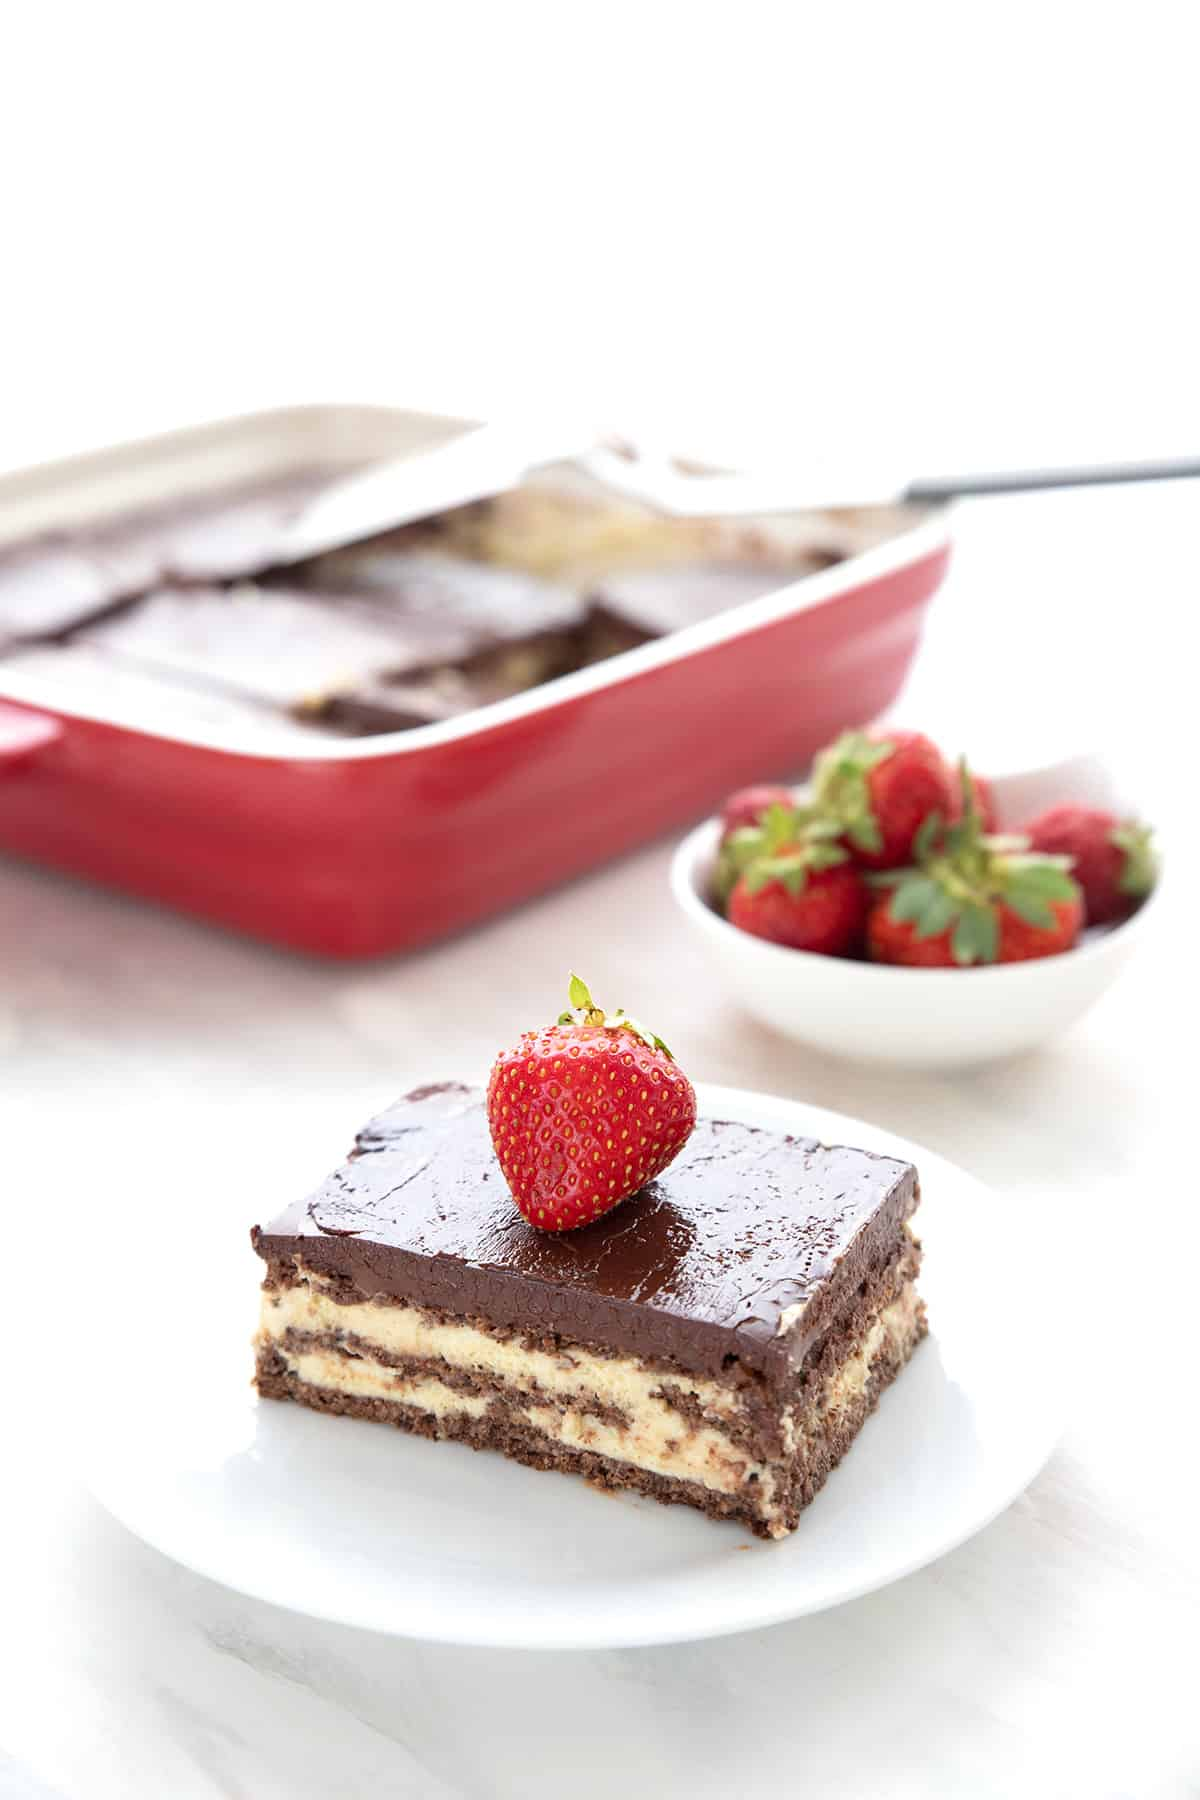 A slice of eclair cake on a white plate, in front of the pan with the rest of the cake.